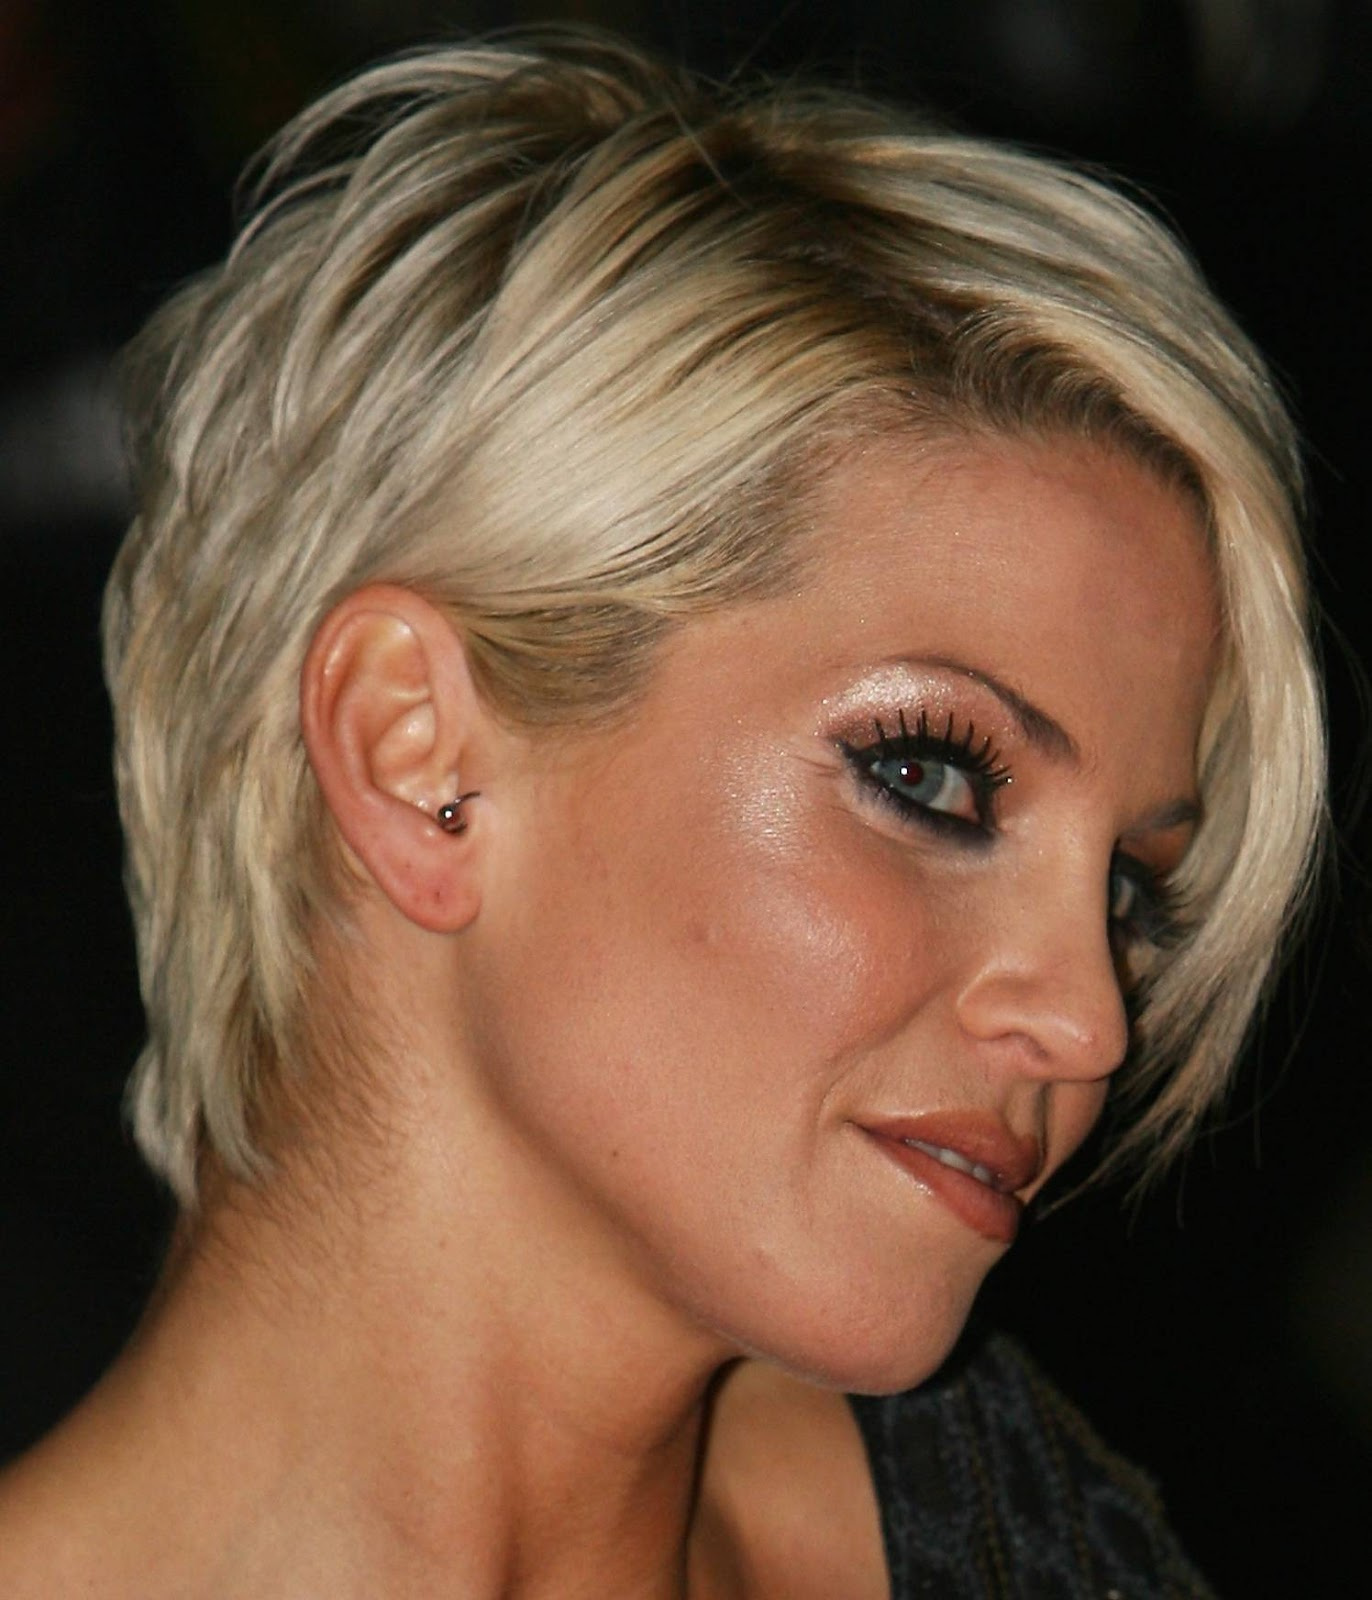 Sensational Short Hairstyle For Square Face Short Hairstyles Gunalazisus